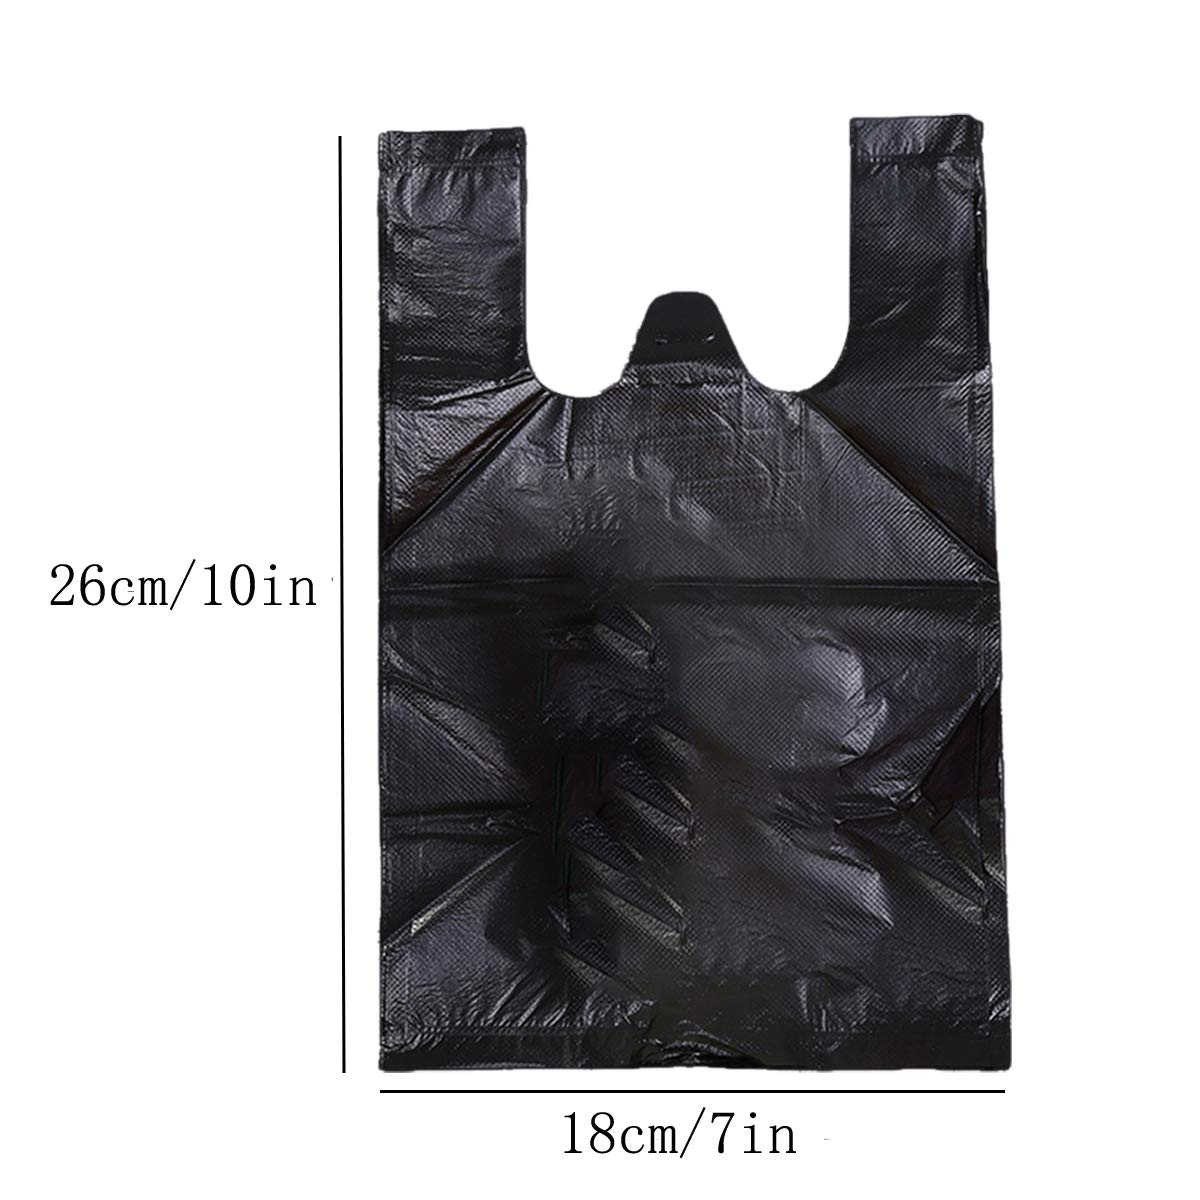 Sanitary Napkin Bags Black Little Waste Bags Set of 300 Pack Personal Disposal Bags